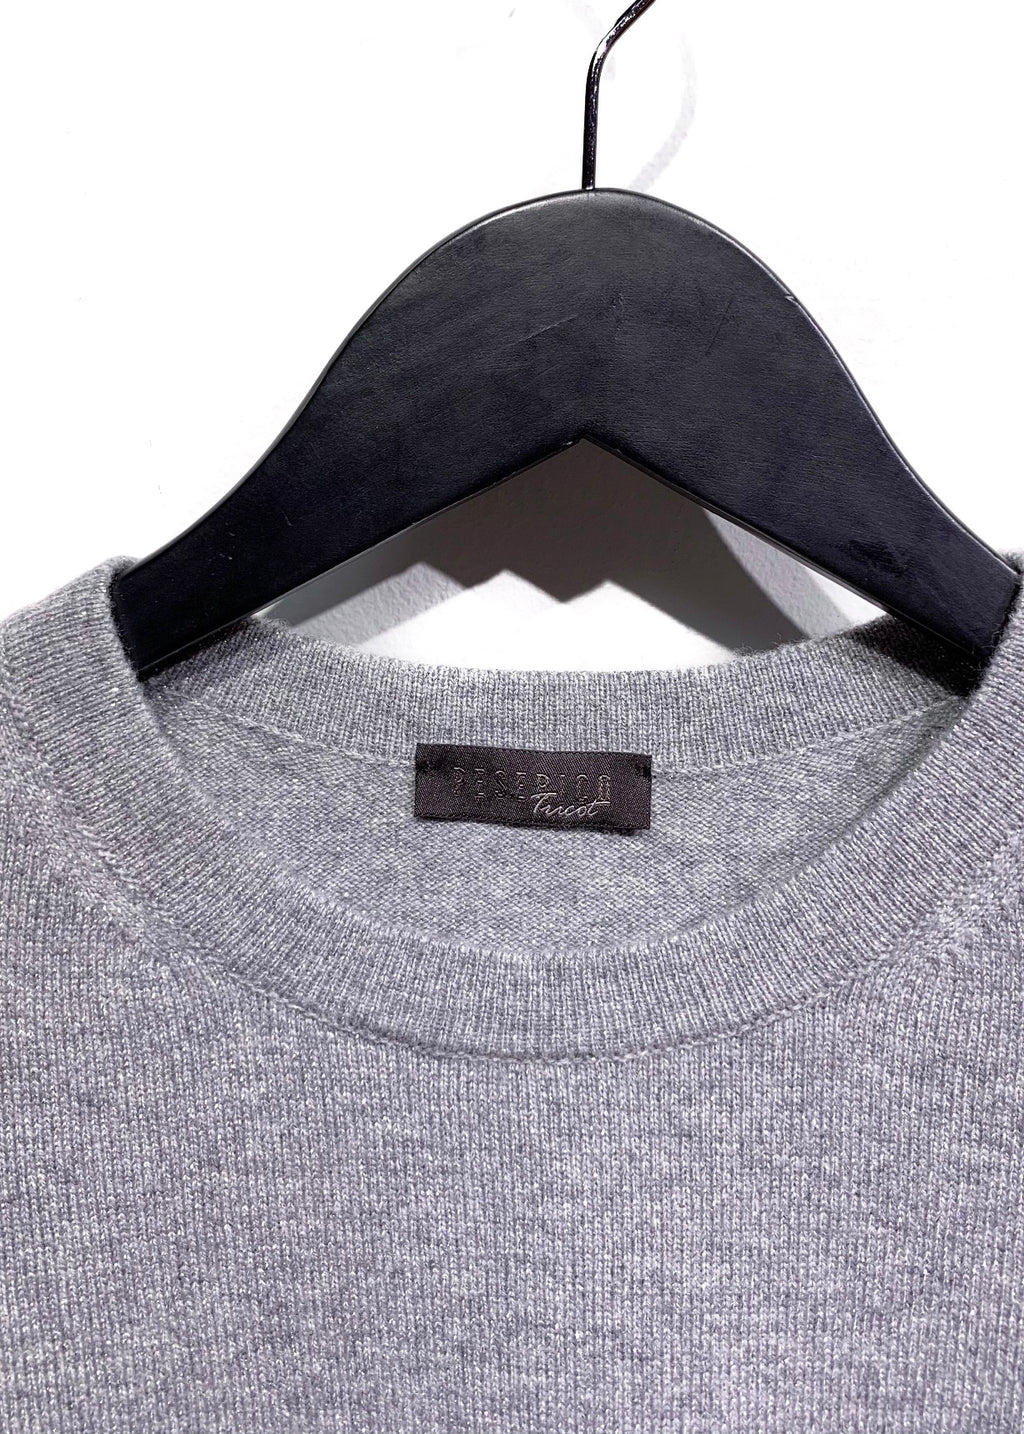 Peserico Tricot Grey Silver Lurex Wool Blend Sweater